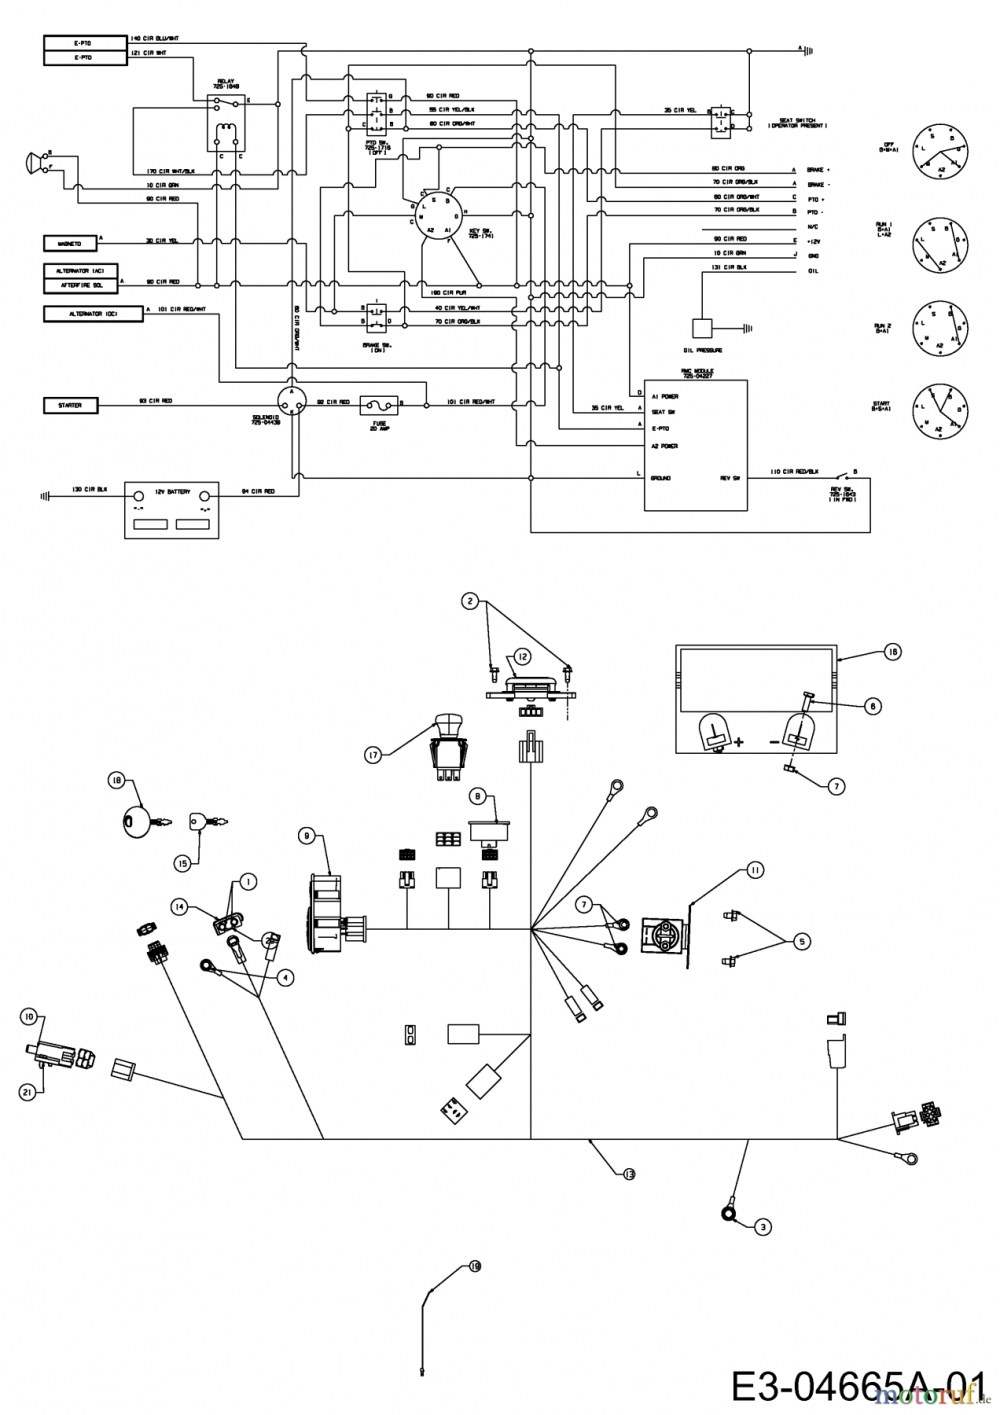 medium resolution of wiring diagram for 2008 cub cadet gt2550 wiring diagram load wiring diagram for 2008 cub cadet gt2550